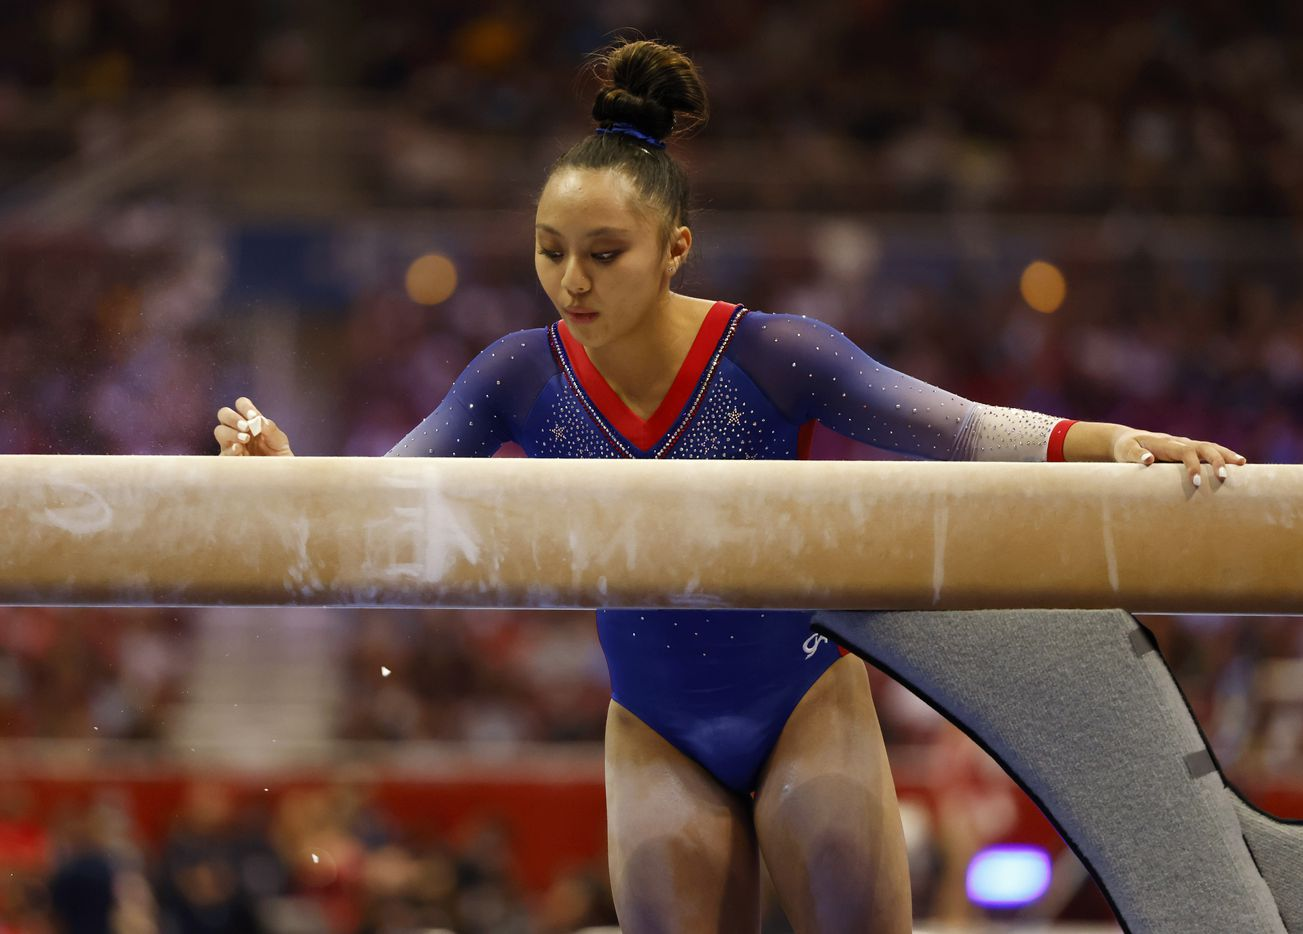 Emma Malabuyo of Texas Dreams marks her spot on the balance beam with chalk before competing during day 1 of the women's 2021 U.S. Olympic Trials at America's Center on Friday, June 25, 2021 in St Louis, Missouri.(Vernon Bryant/The Dallas Morning News)